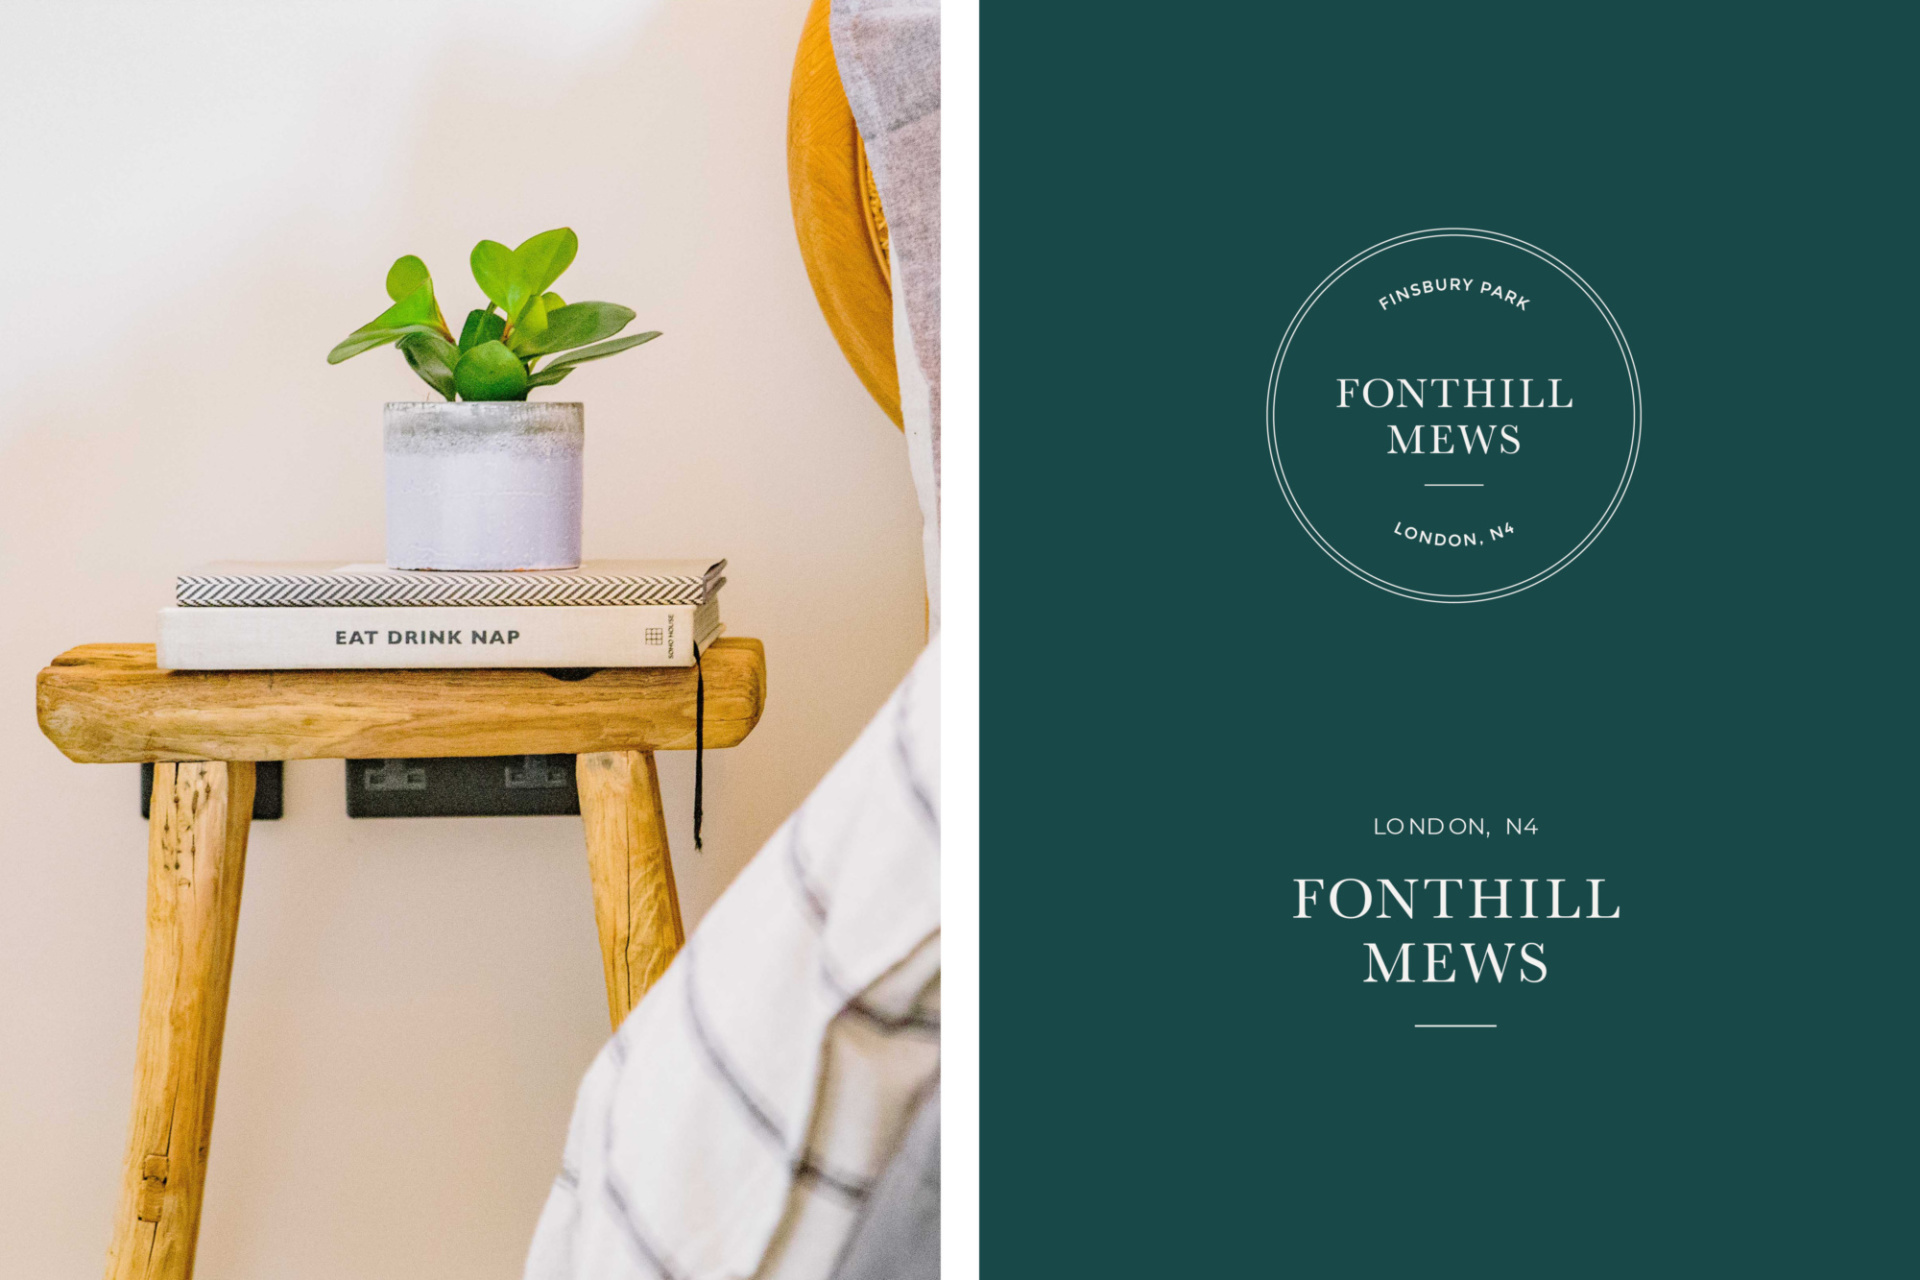 Two logo design for Fonthill Mews, Finsbury Park properties- left side image of modern, wooden bedside table. Graphic design by Barefaced Studios, design agency based in Islington, North London.